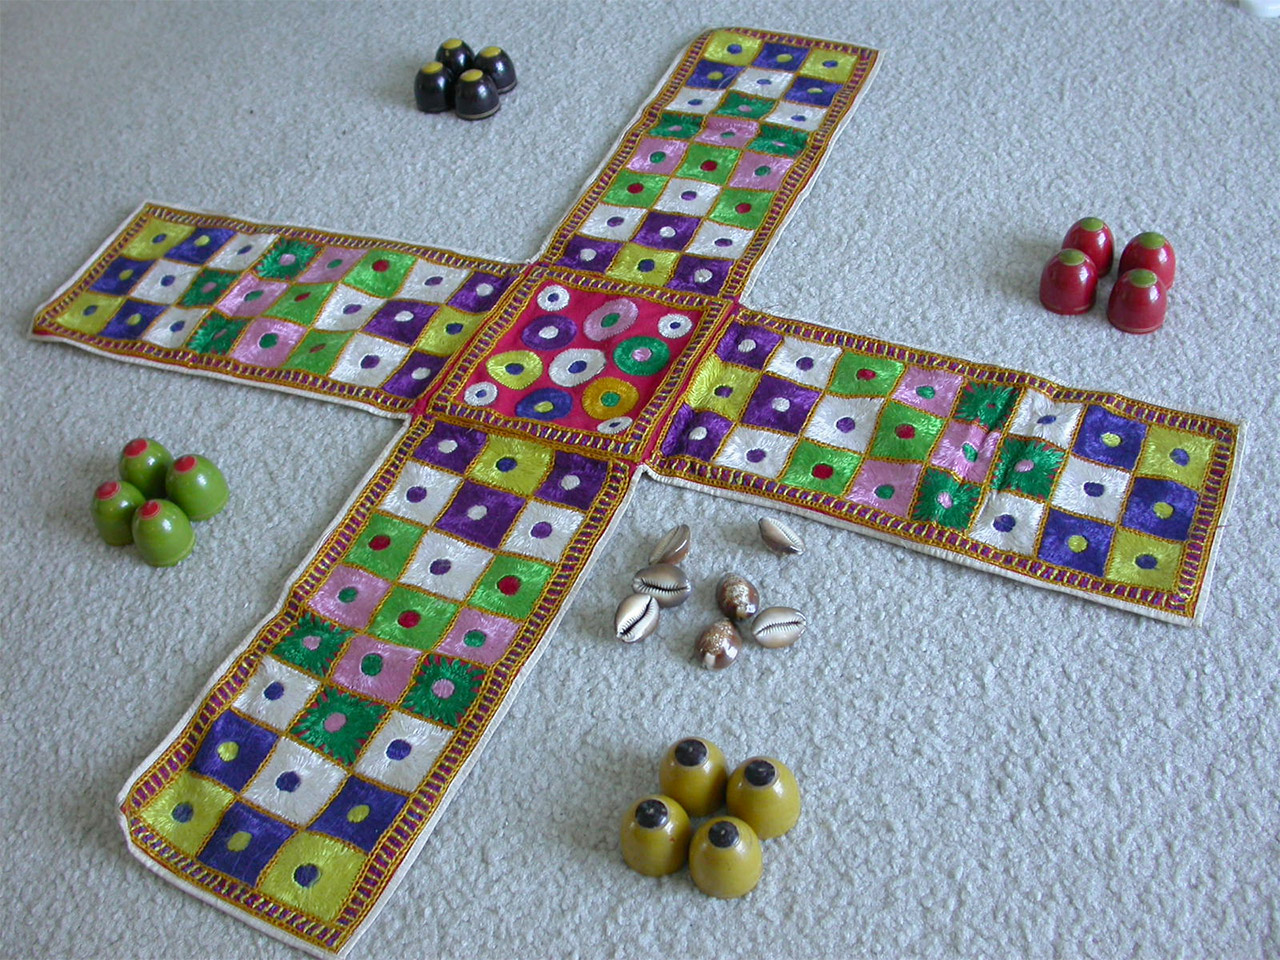 Traditional-games-of-India-Chaupar